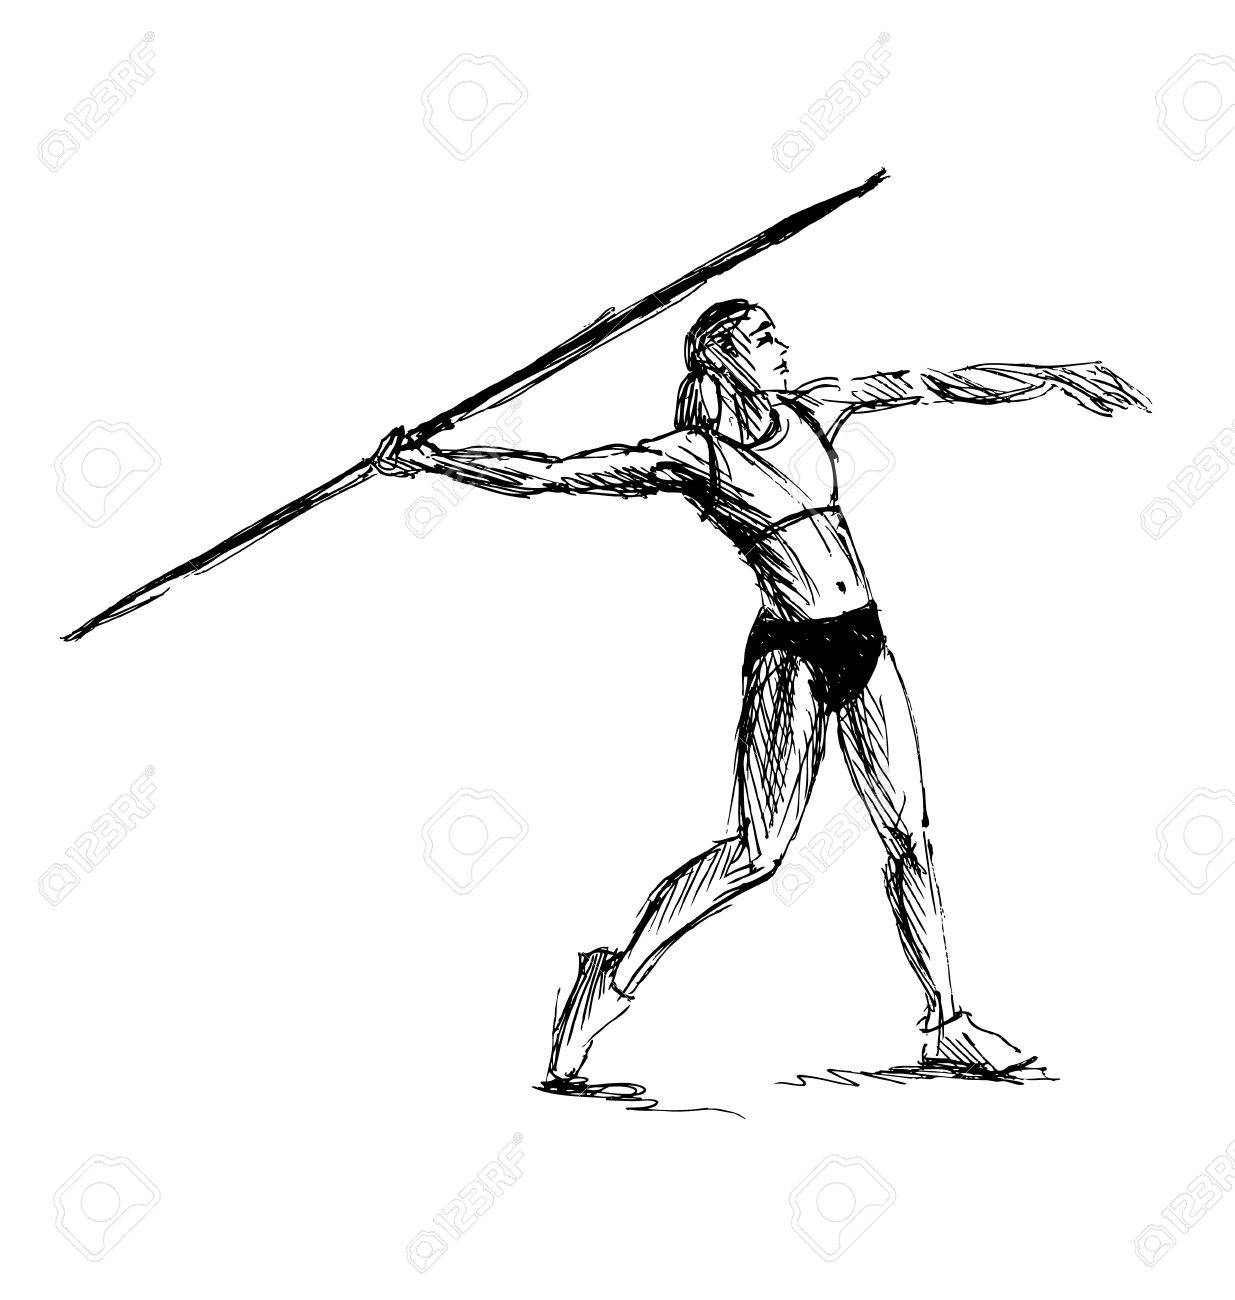 1235x1300 Hand Sketch Athlete Throwing A Javelin Illustration Royalty Free